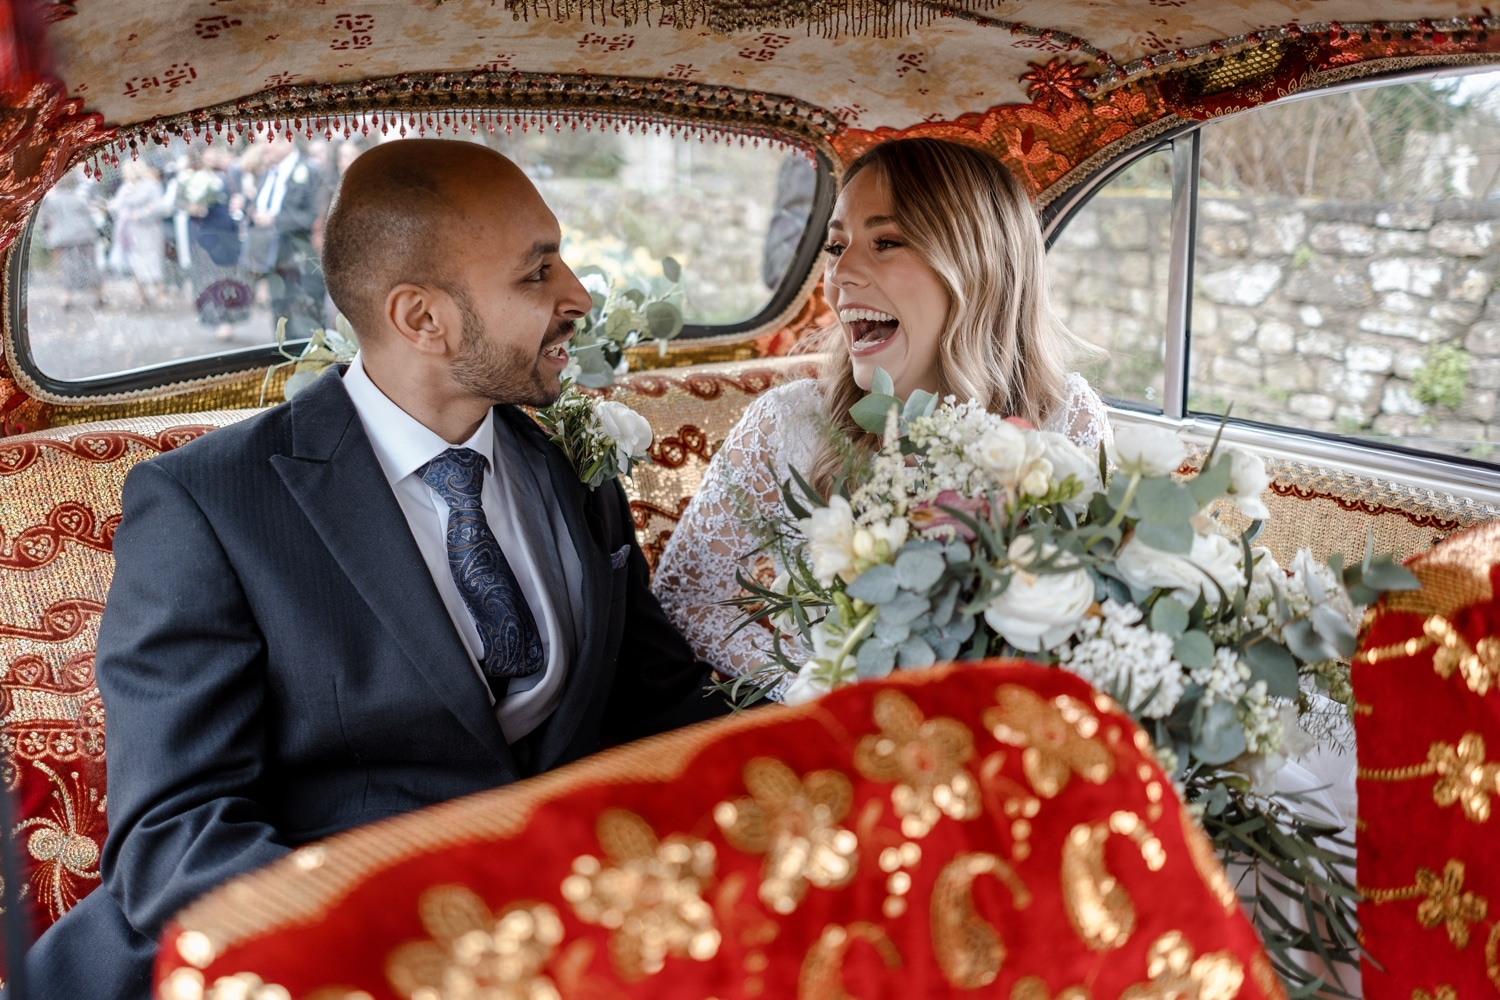 Bride laughs in wedding car which is a Indian taxi